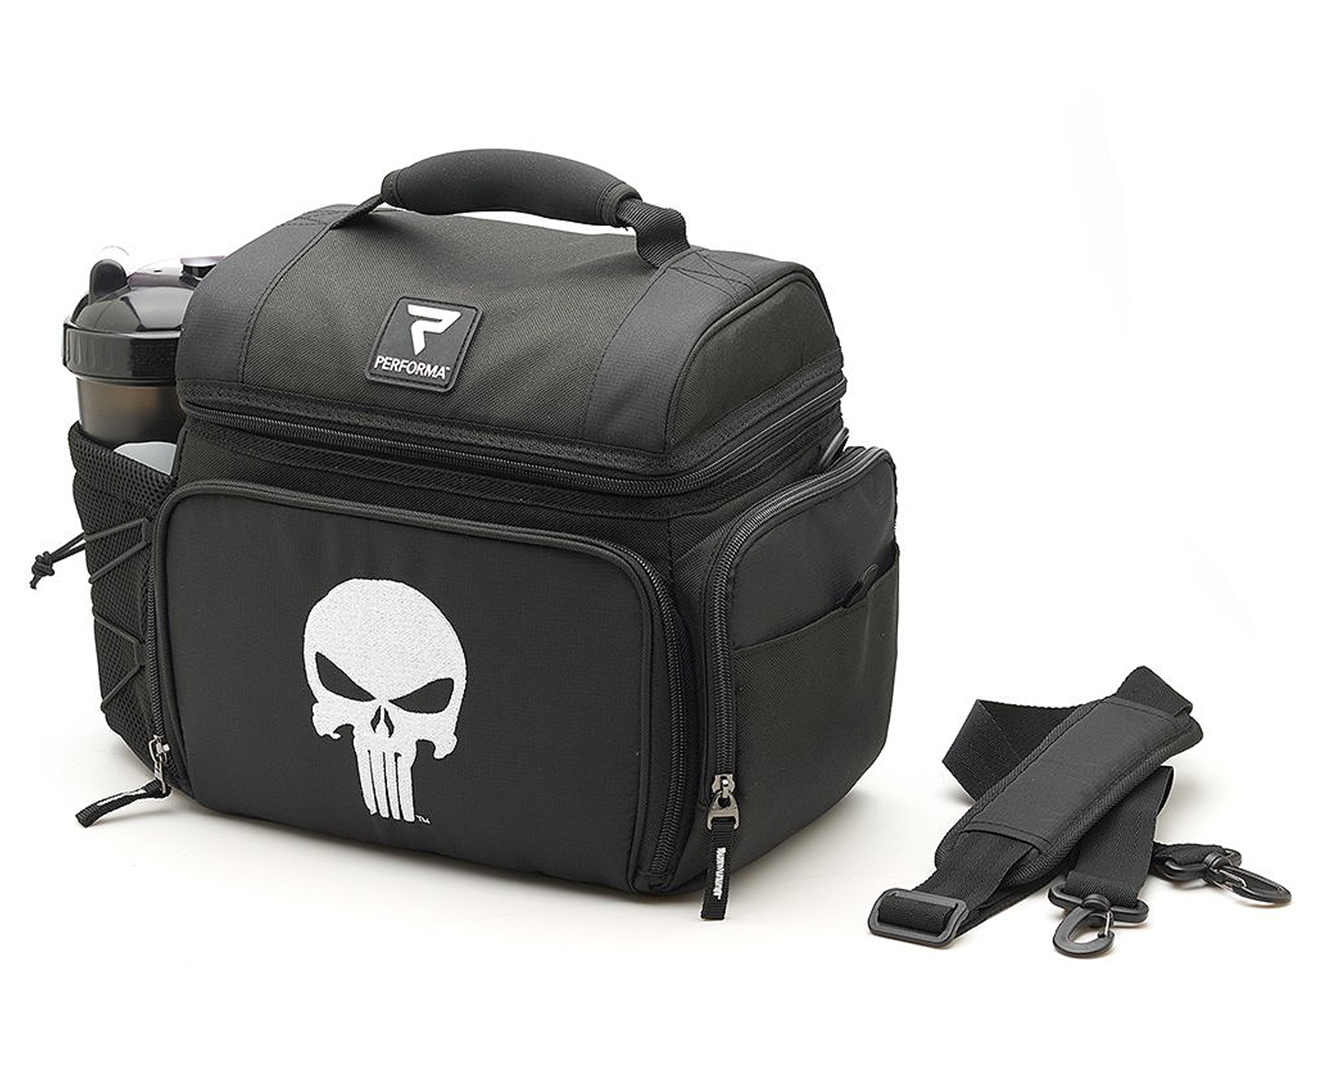 c7542c01c5 Performa Matrix Marvel The Punisher All-In-1 6 Meal Prep Bag